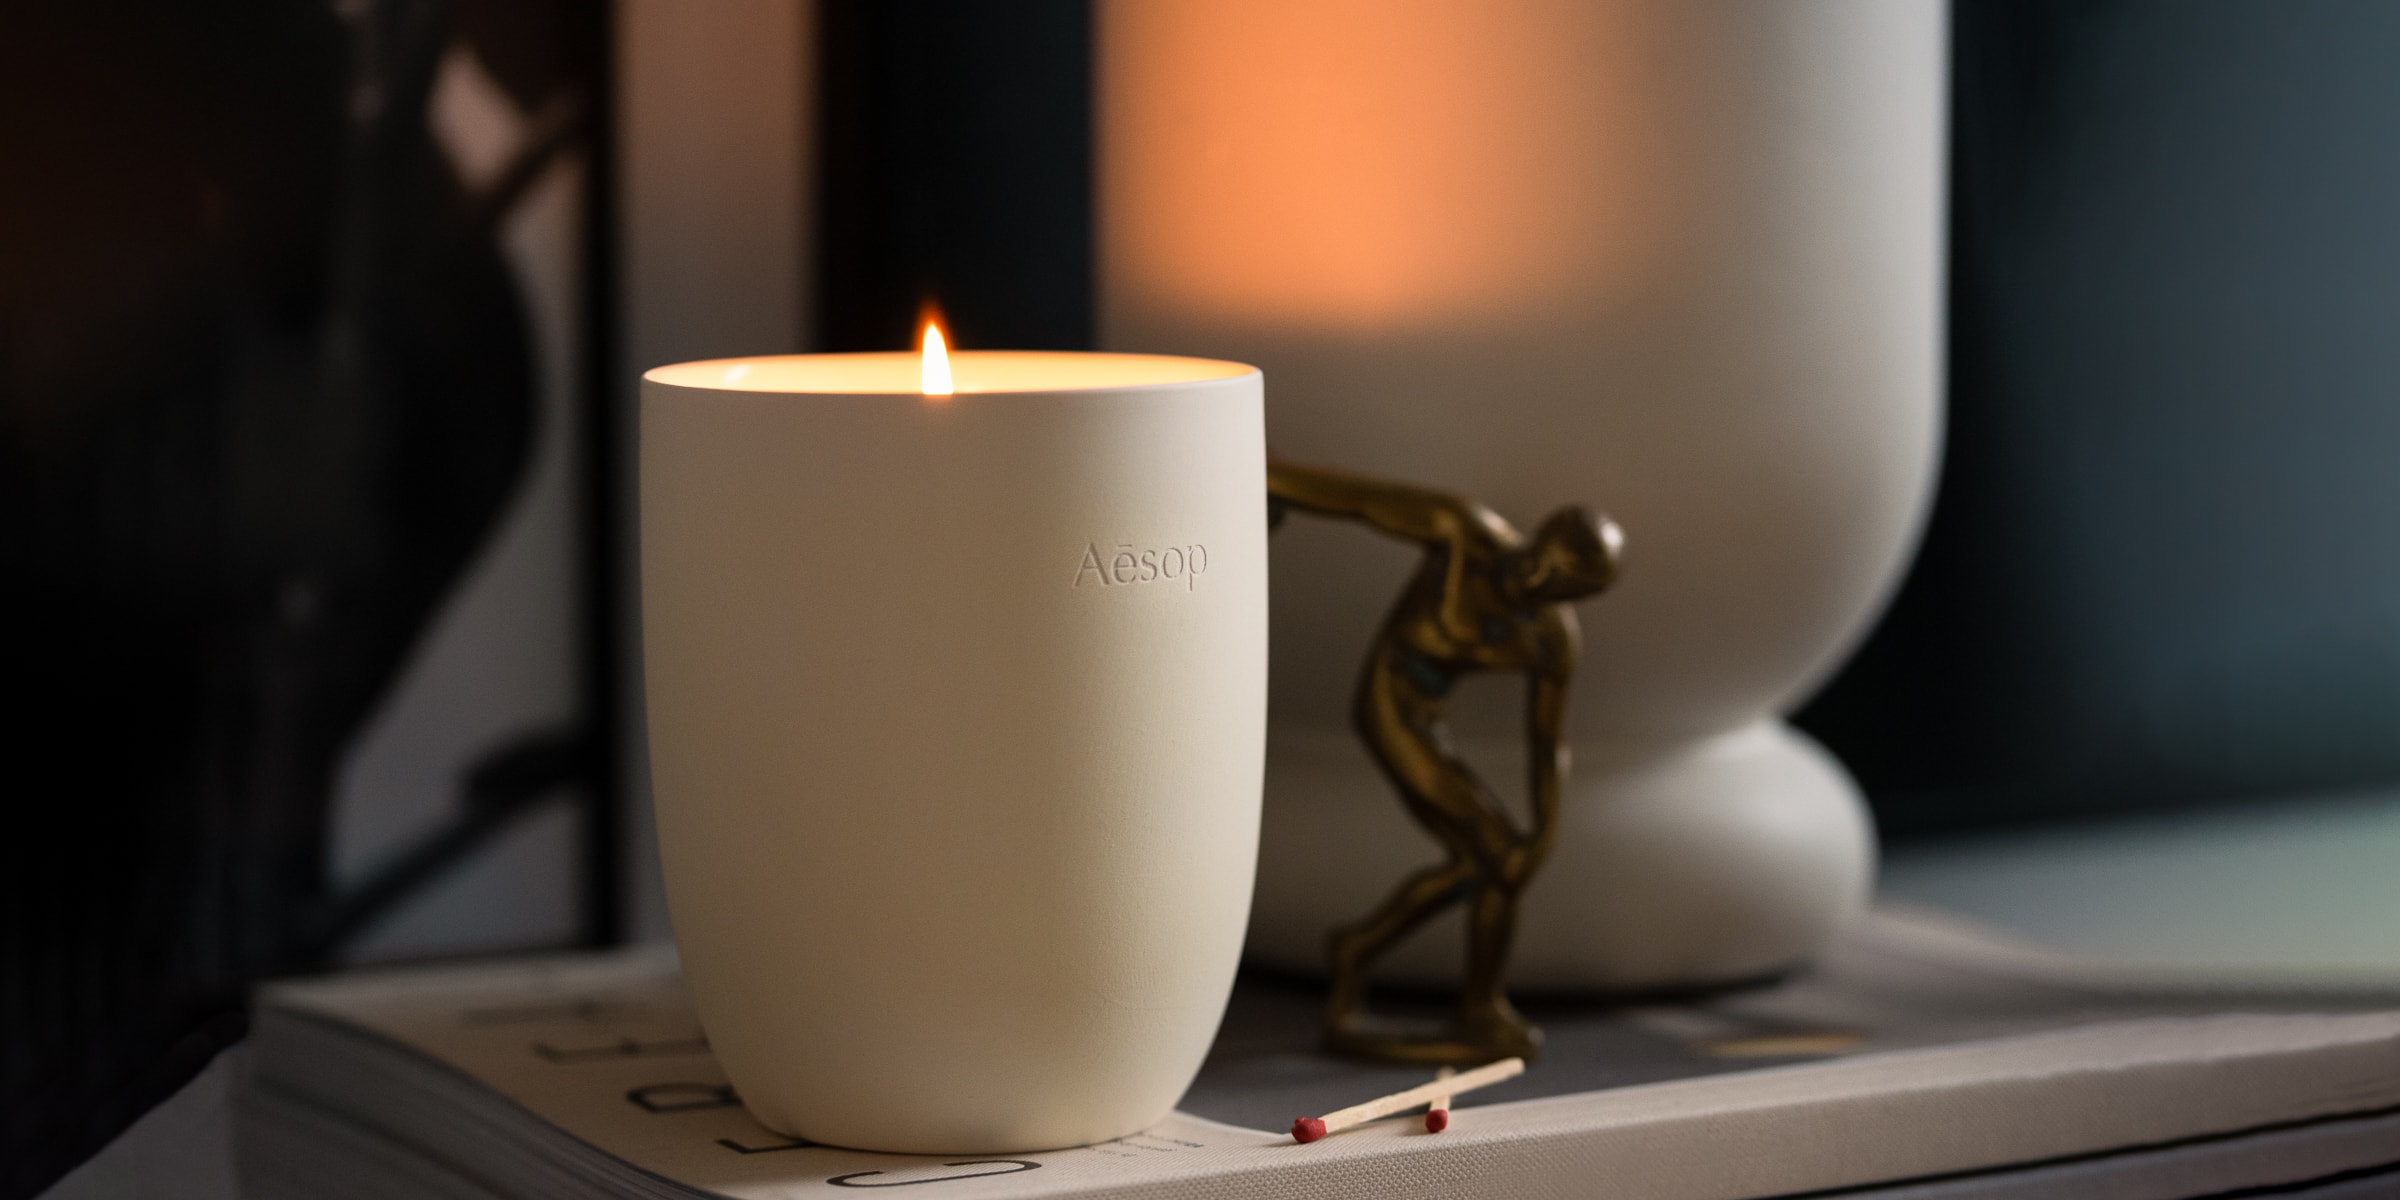 15 Best Scented Candles Amazing Scent For You Or To Gift 2021 Guide